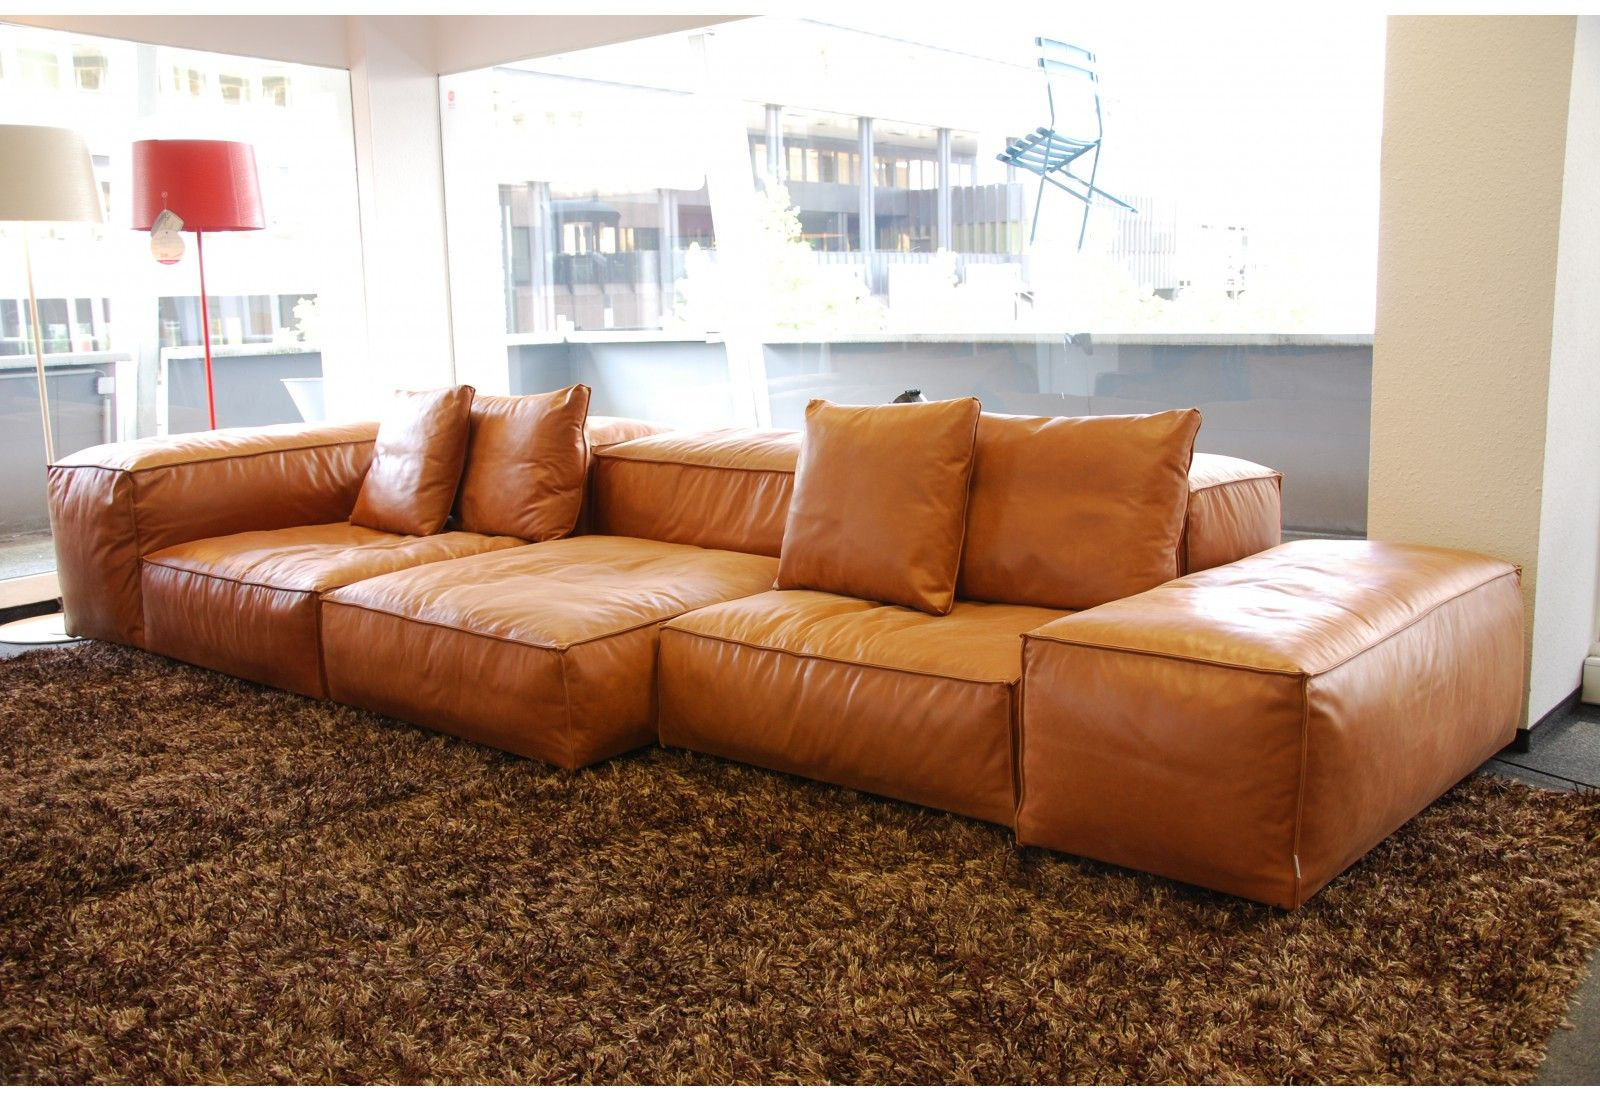 Extra Soft Essere Cyprus Ltd Living Room Sofa Sectional Sofa Sofa Design